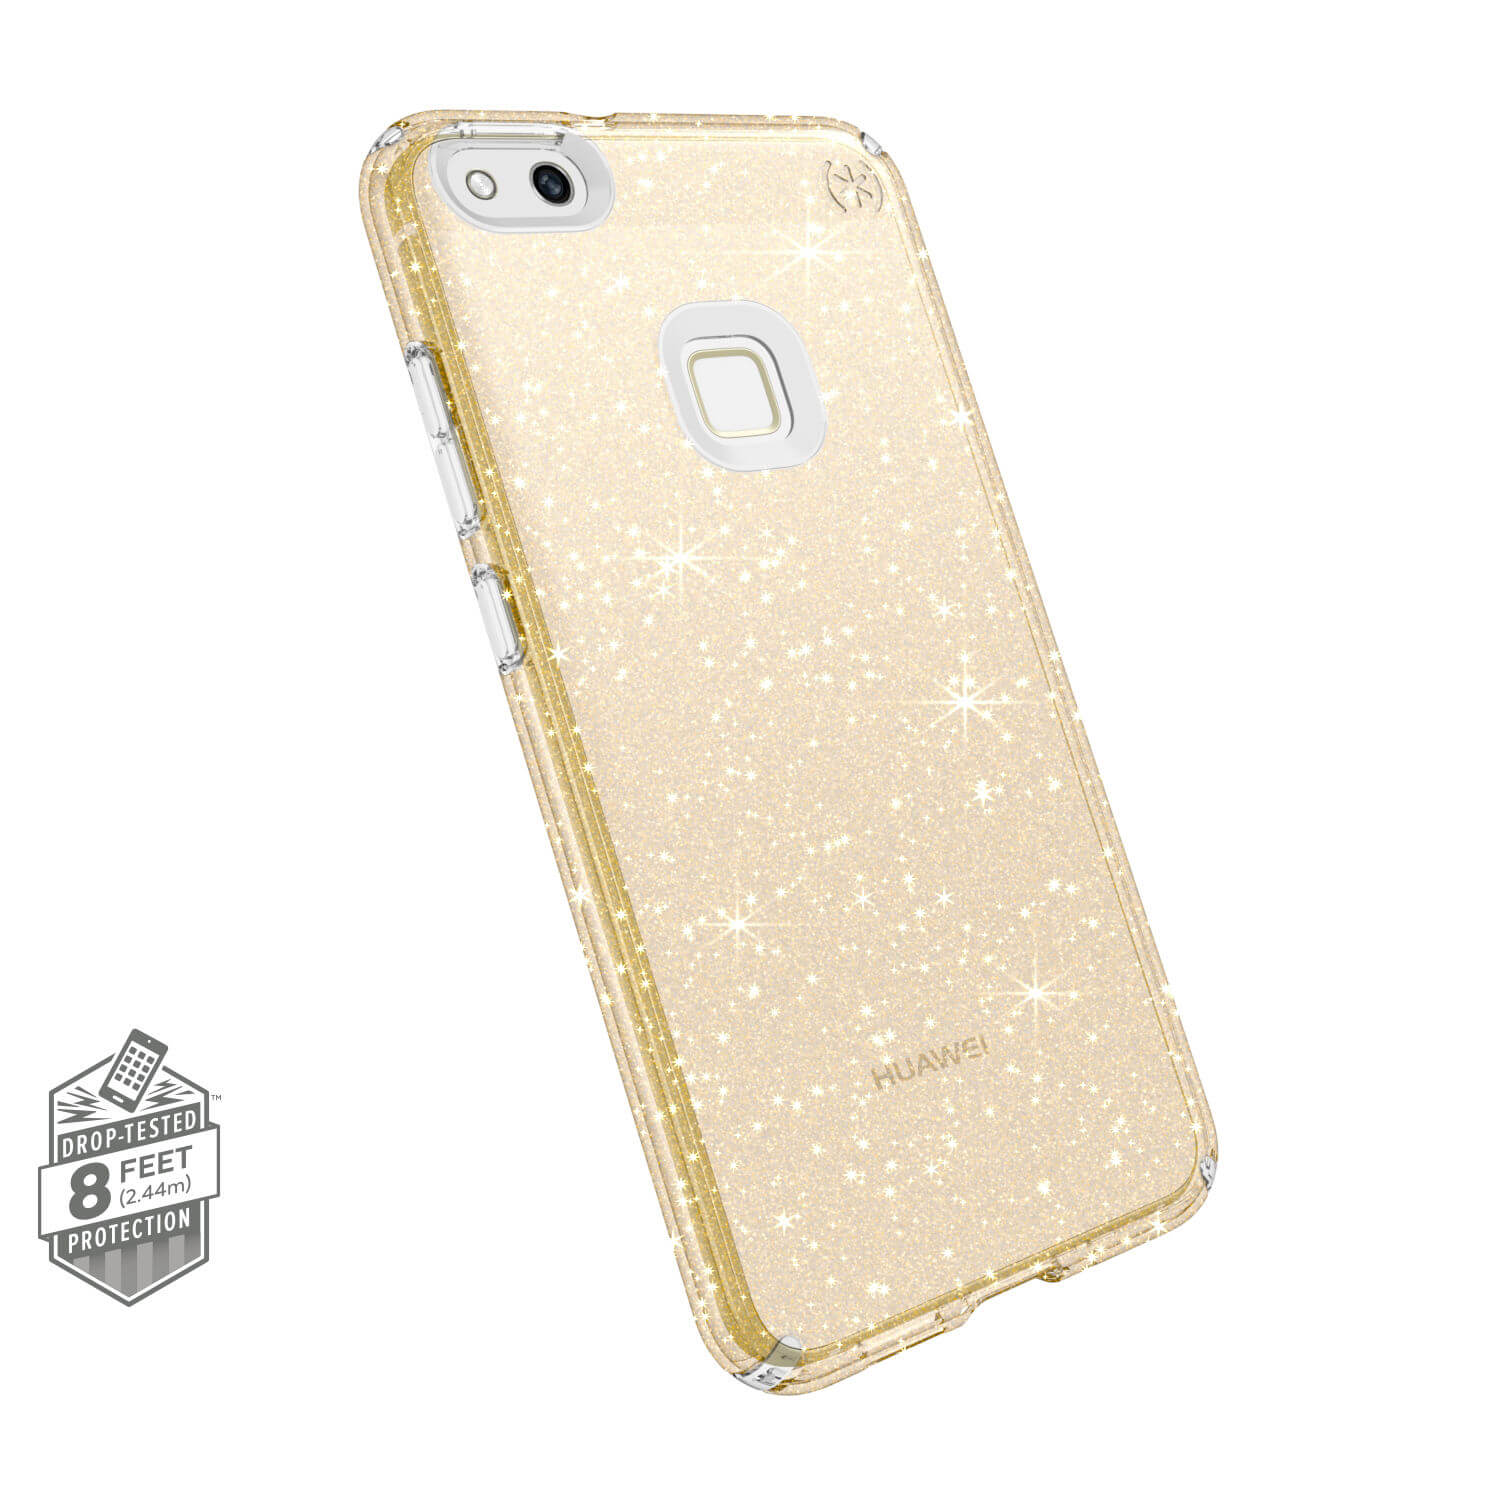 Search and compare best prices of Speck Presidio Clear with Glitter Huawei P10 Lite Cases Clear/Gold Glitter in UK